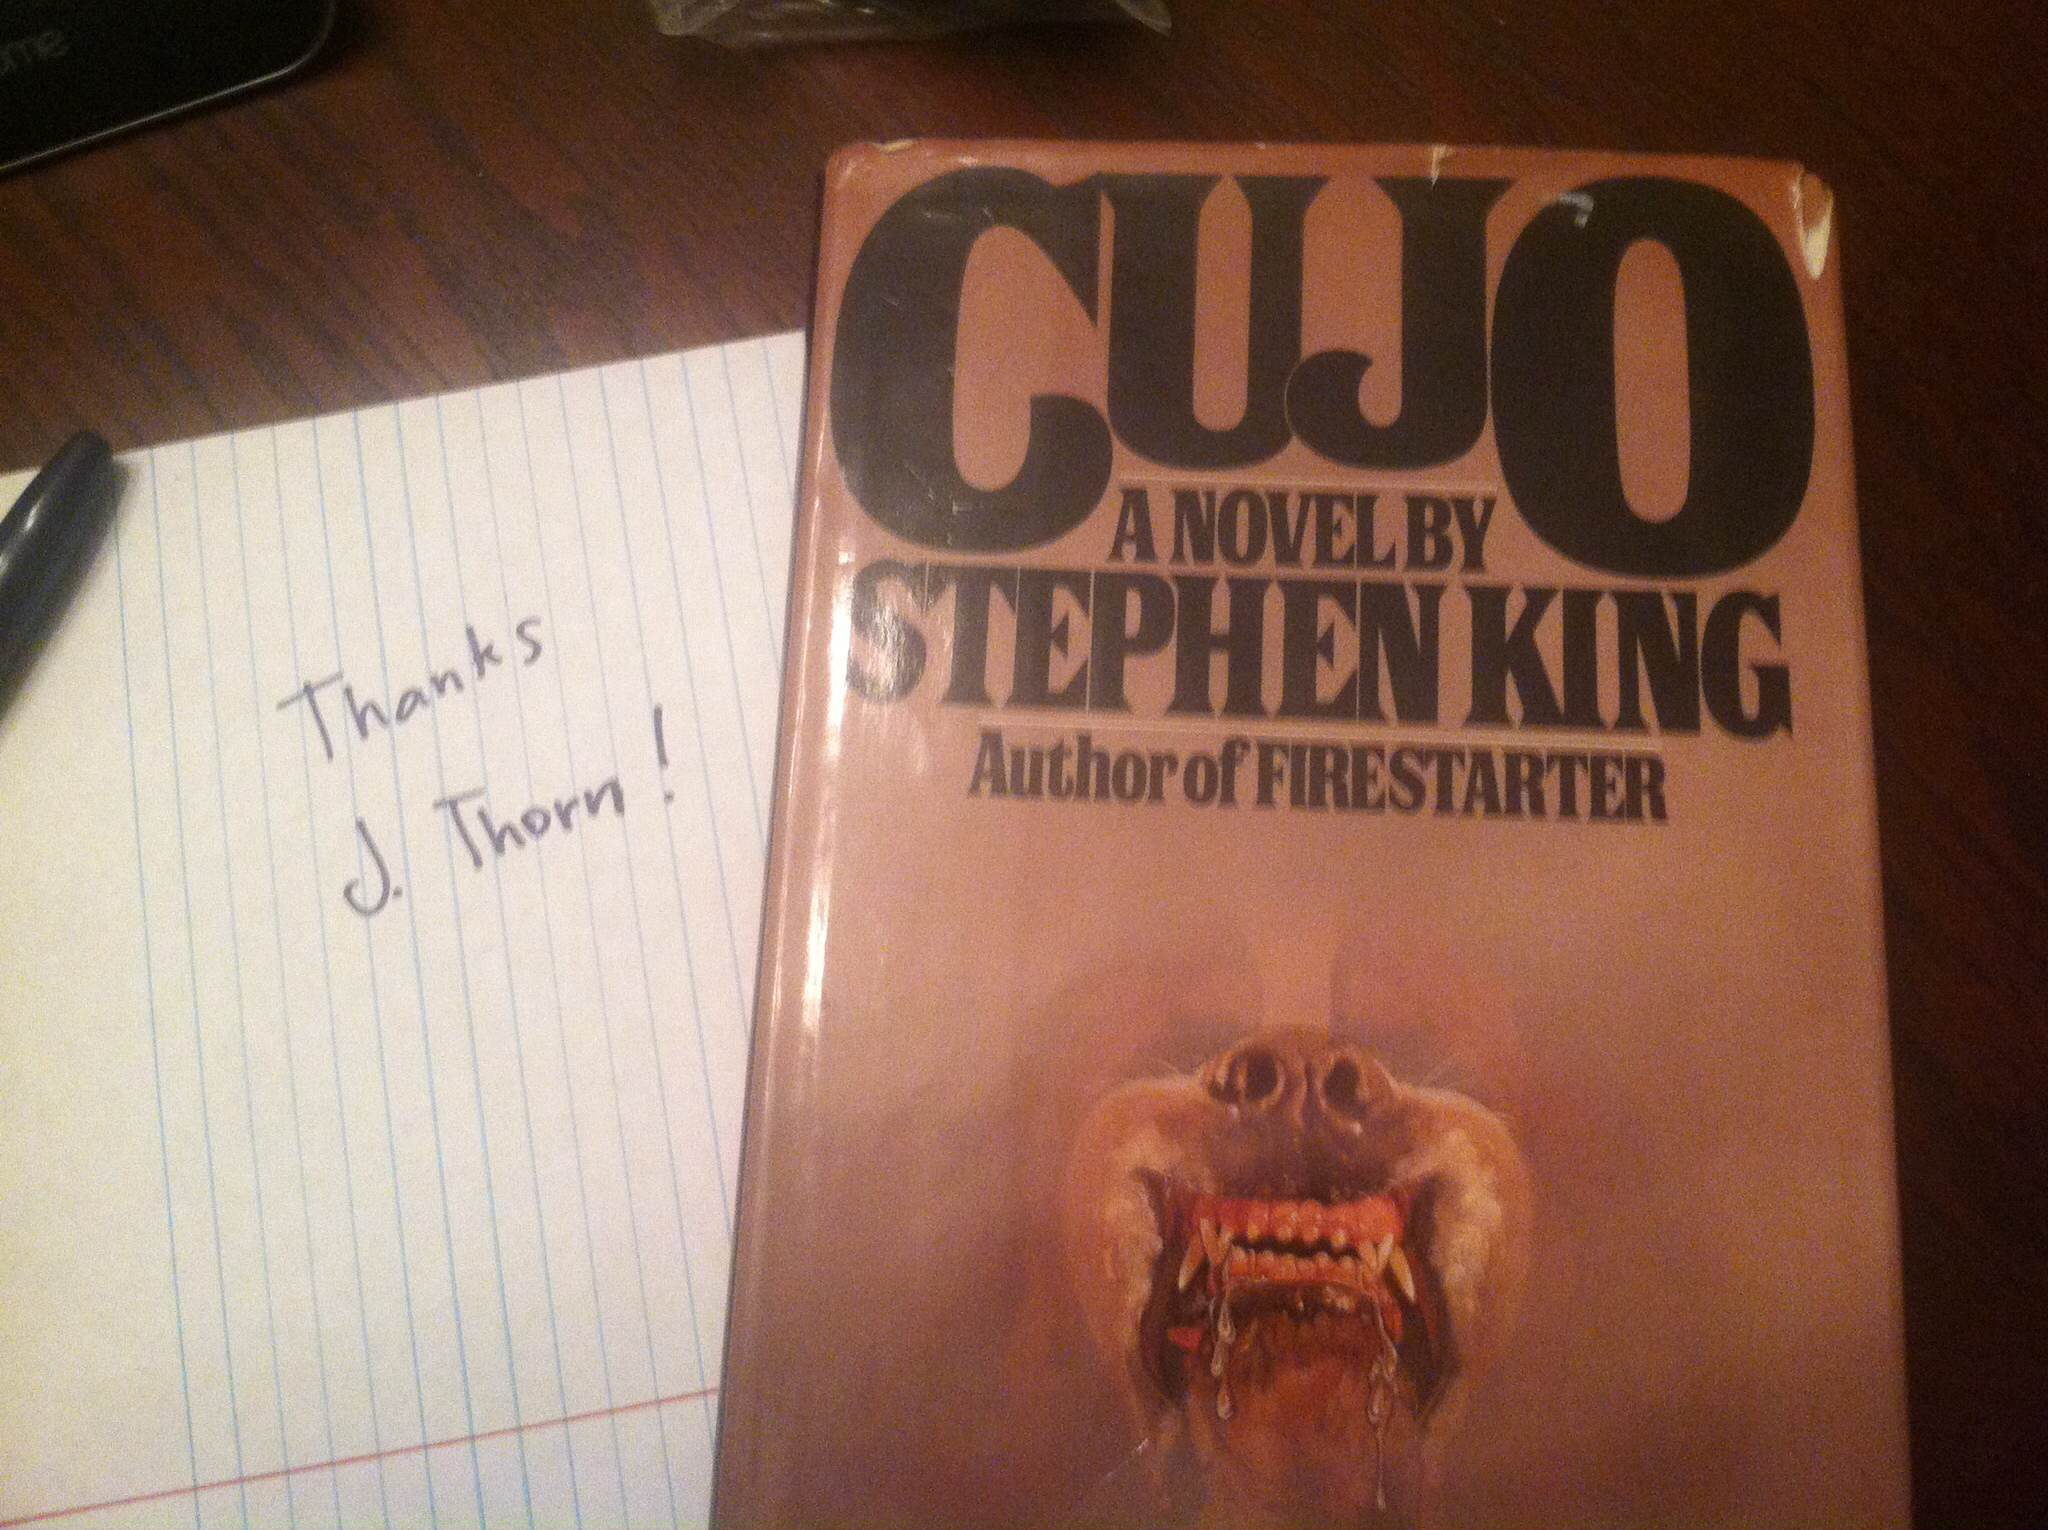 Stephen King Cujo_Winner